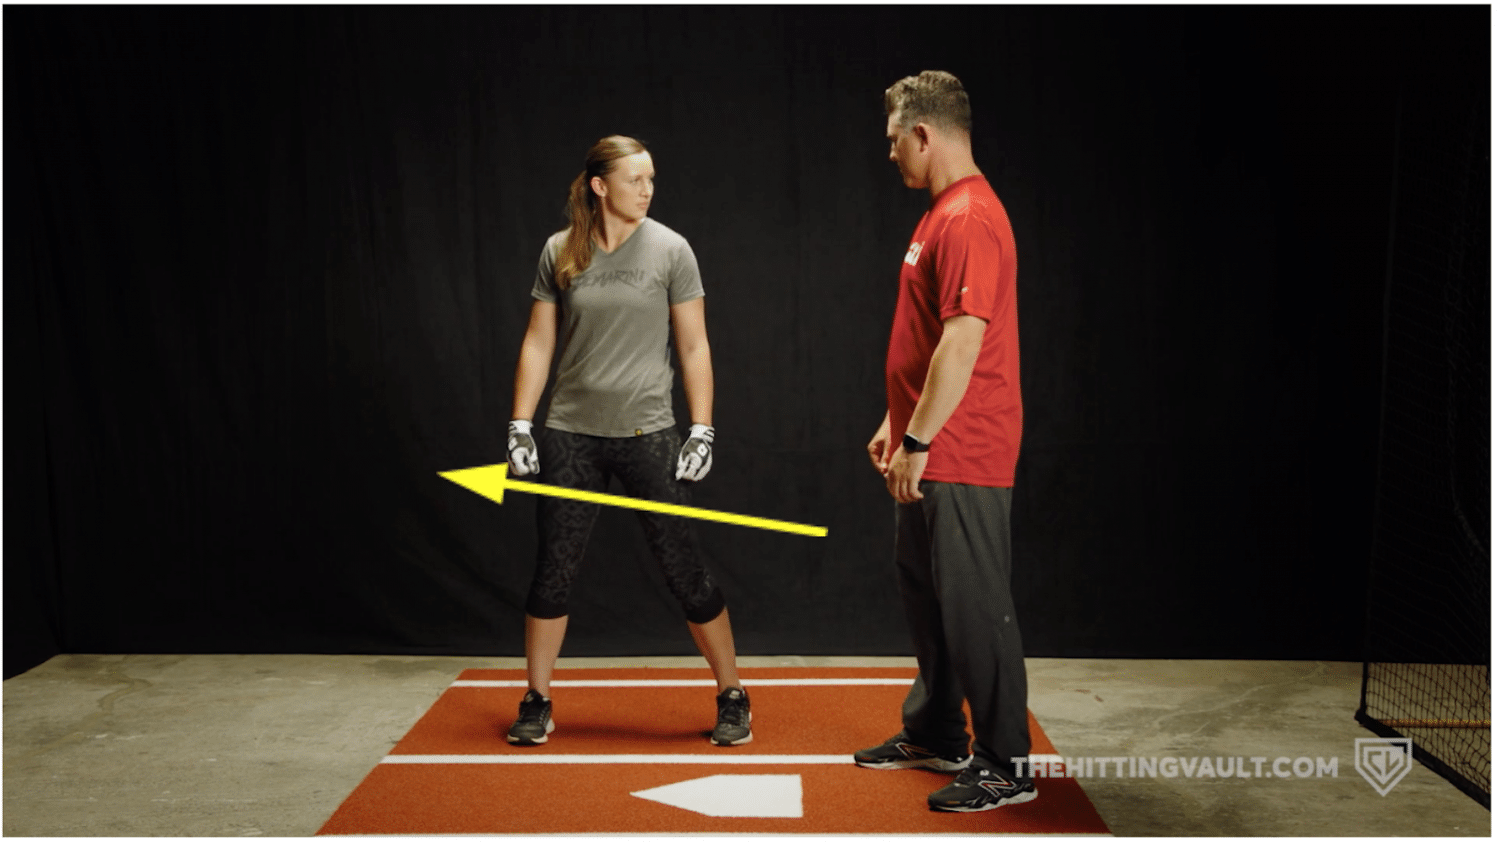 Creating separation is key for hitting with power